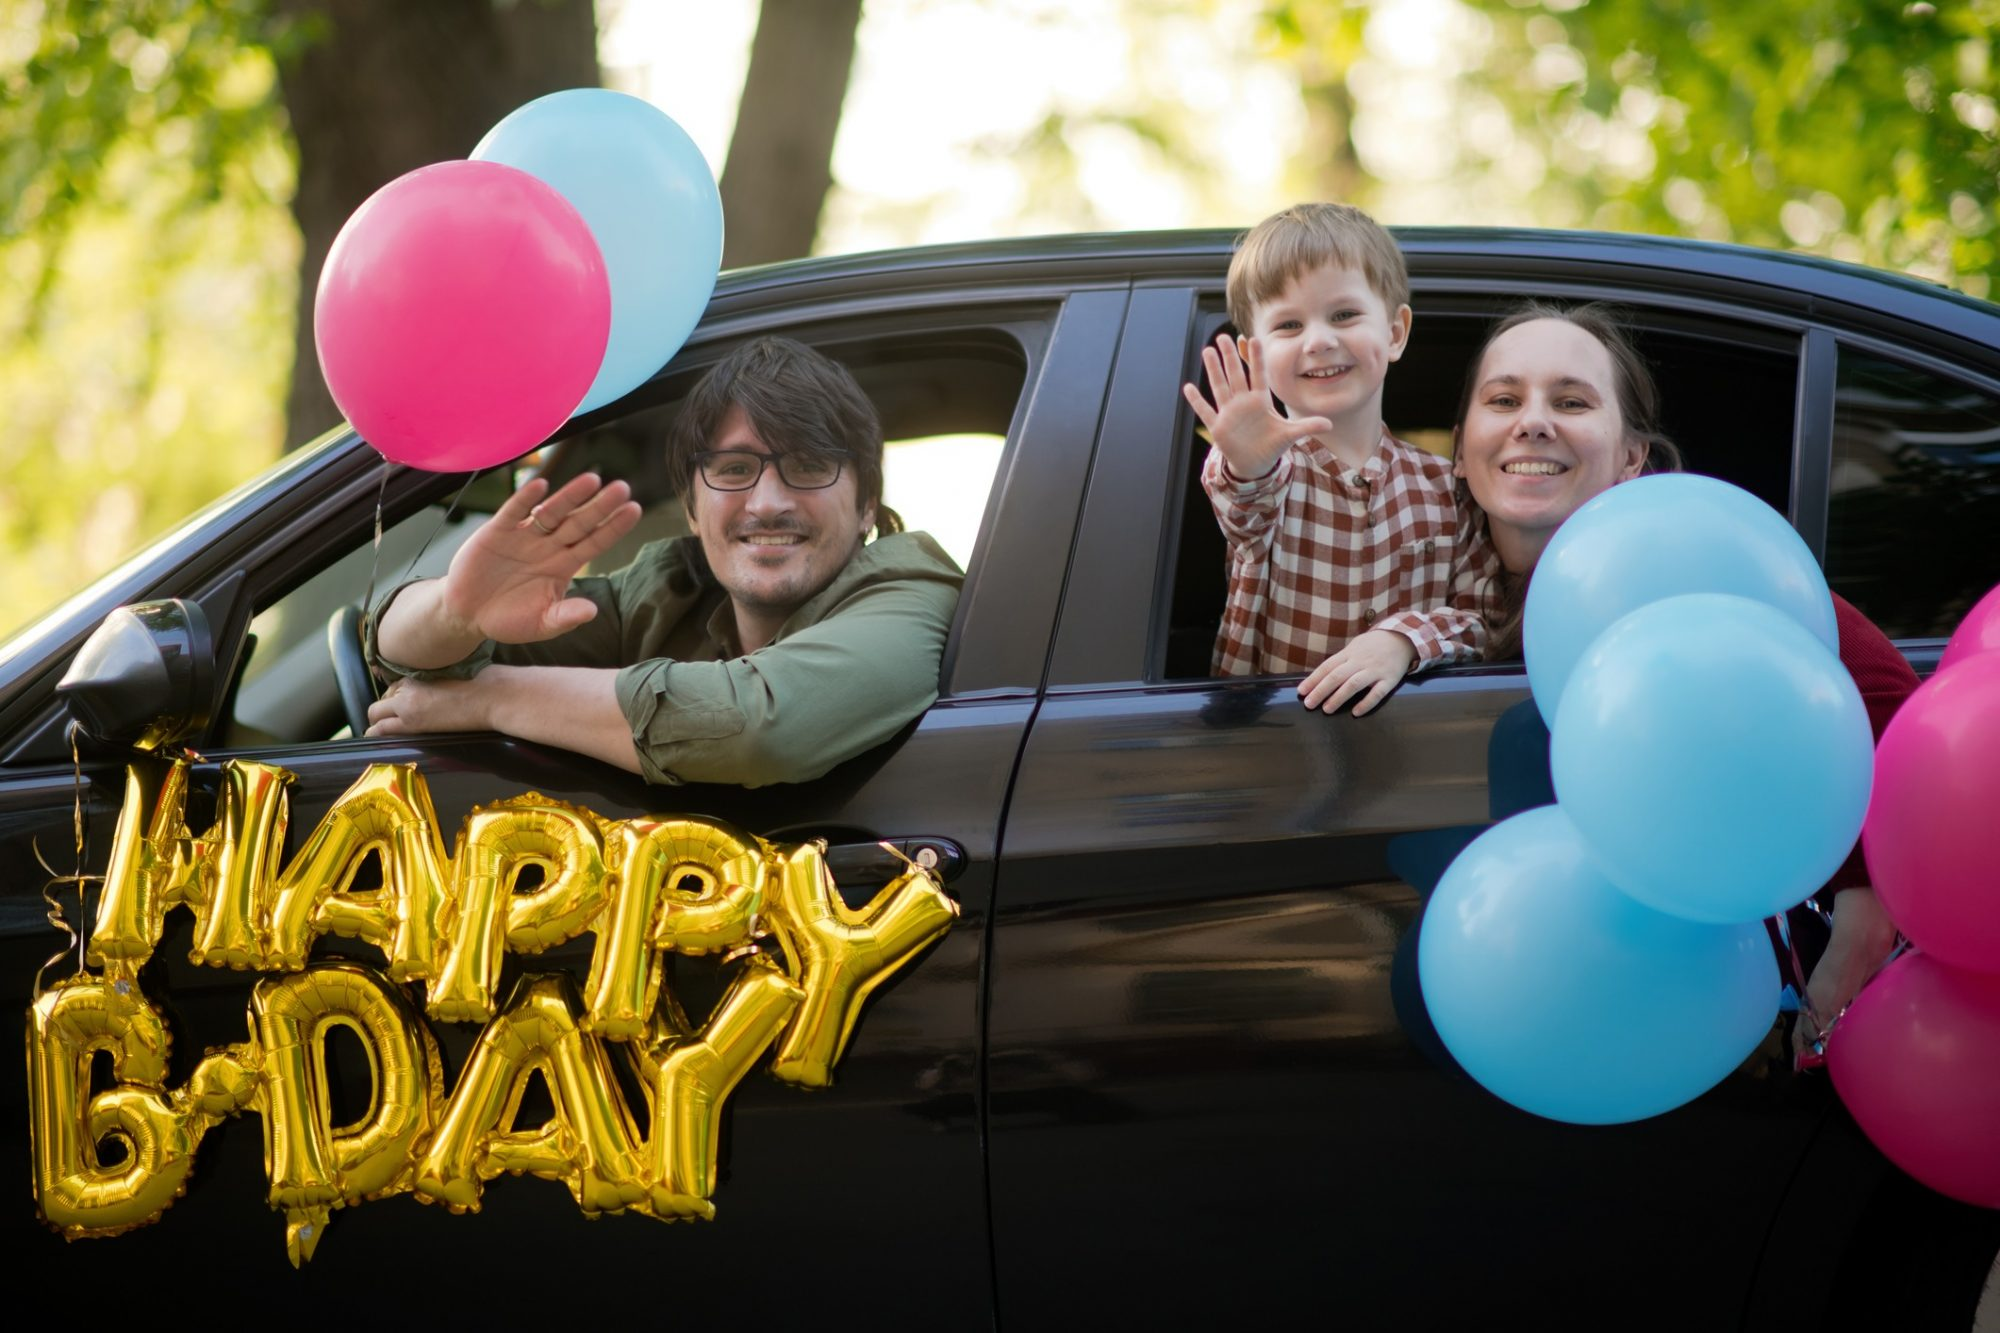 family waving hello during a birthday car parade during pandemic